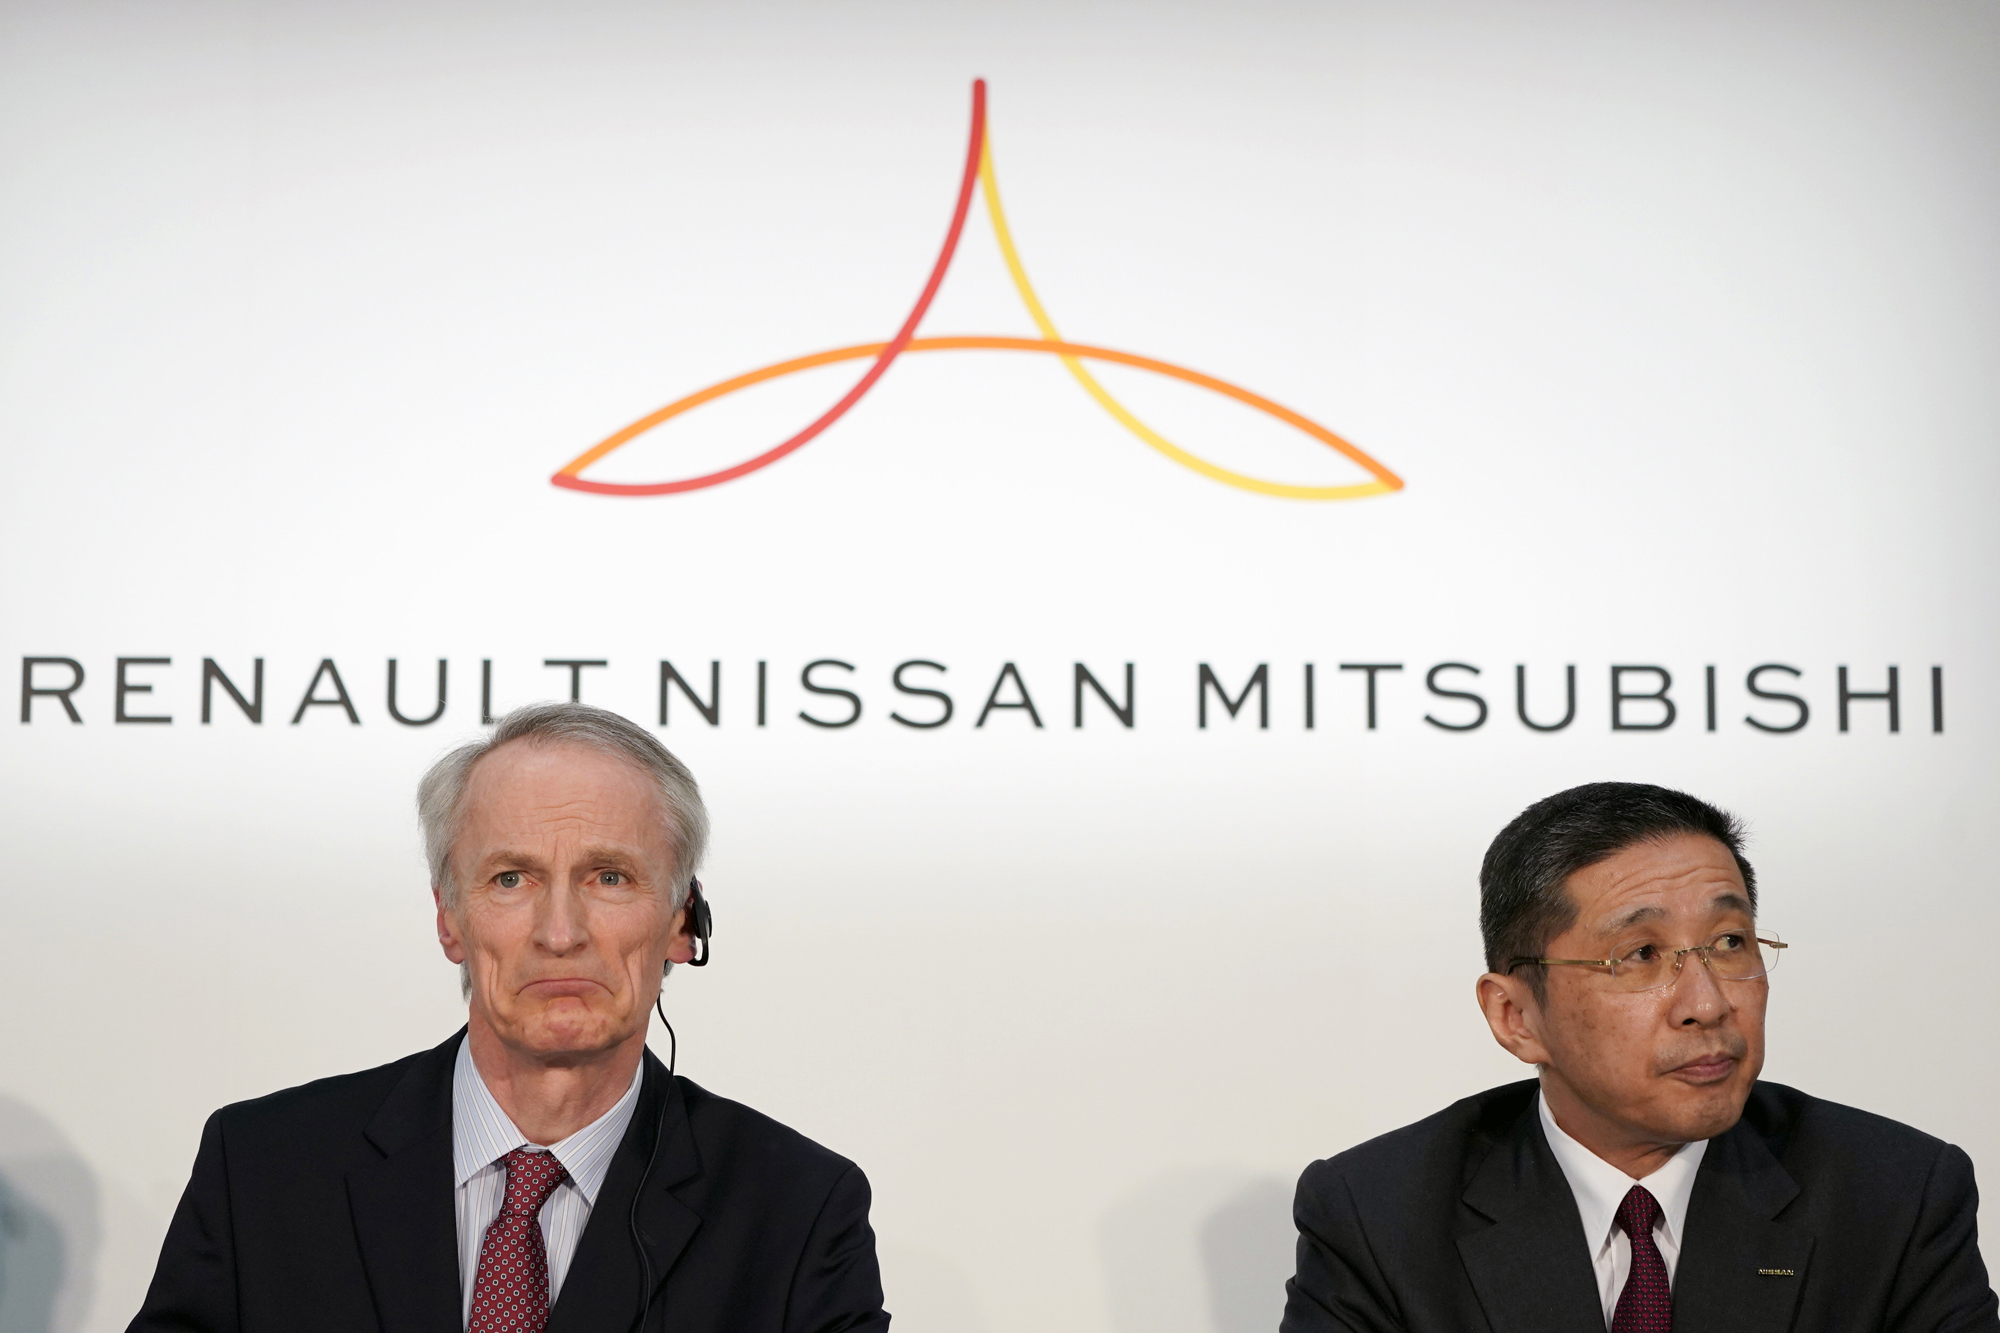 Jean-Dominique Senard (left), chairman of Renault and Nissan Motor Co. President Hiroto Saikawa hold a news conference in Yokohama on March 12. | BLOOMBERG